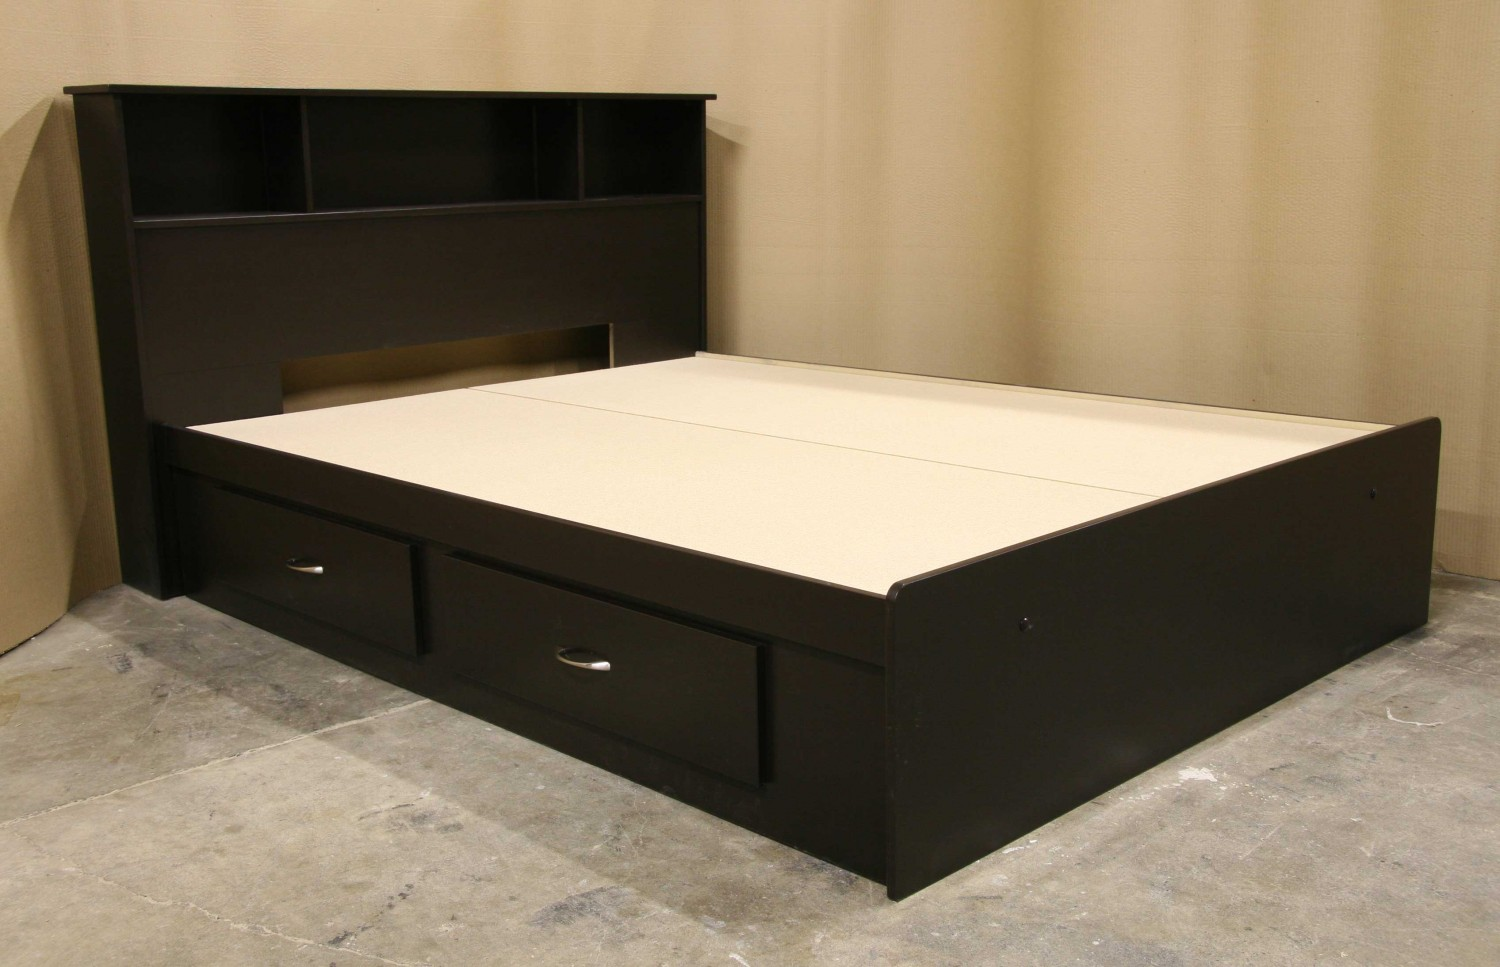 queen size bed frame with drawers underneath full size of winsome queen frame with drawers black wooden FQOJOMN